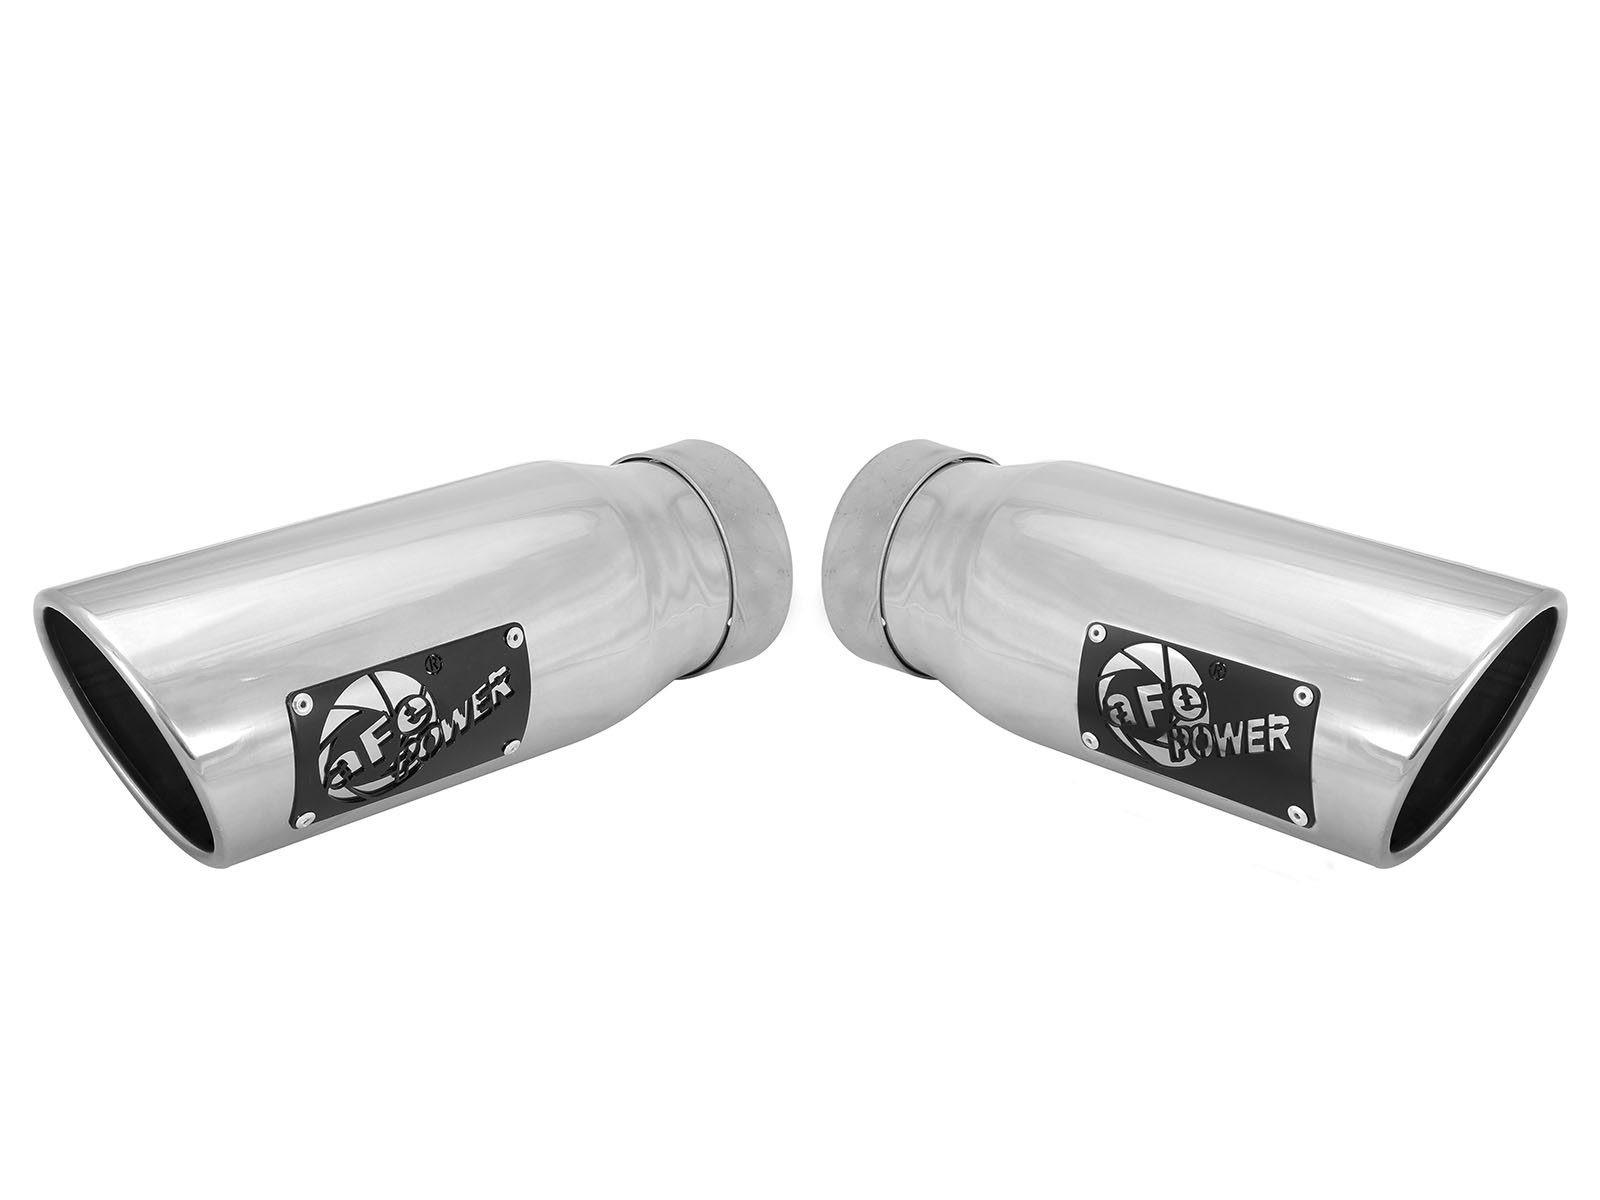 "aFe POWER 49T35456-P12 MACH Force-Xp 3-1/2"" 304 Stainless Steel Exhaust Tip"